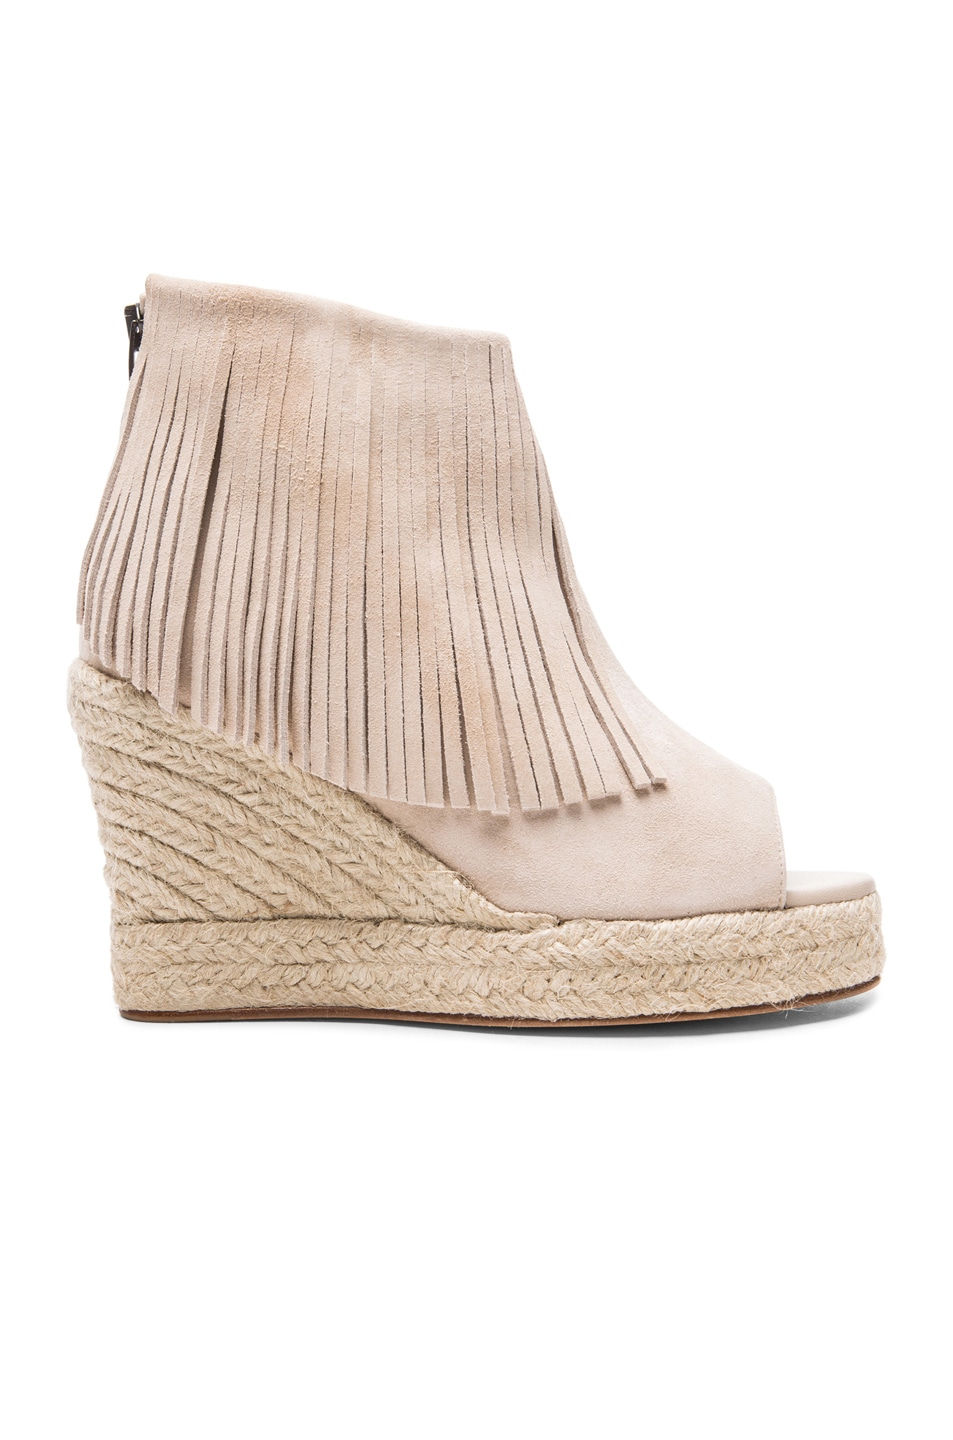 Image 1 of elysewalker los angeles Lindsey Suede Fringe Espadrille Wedges in Dune